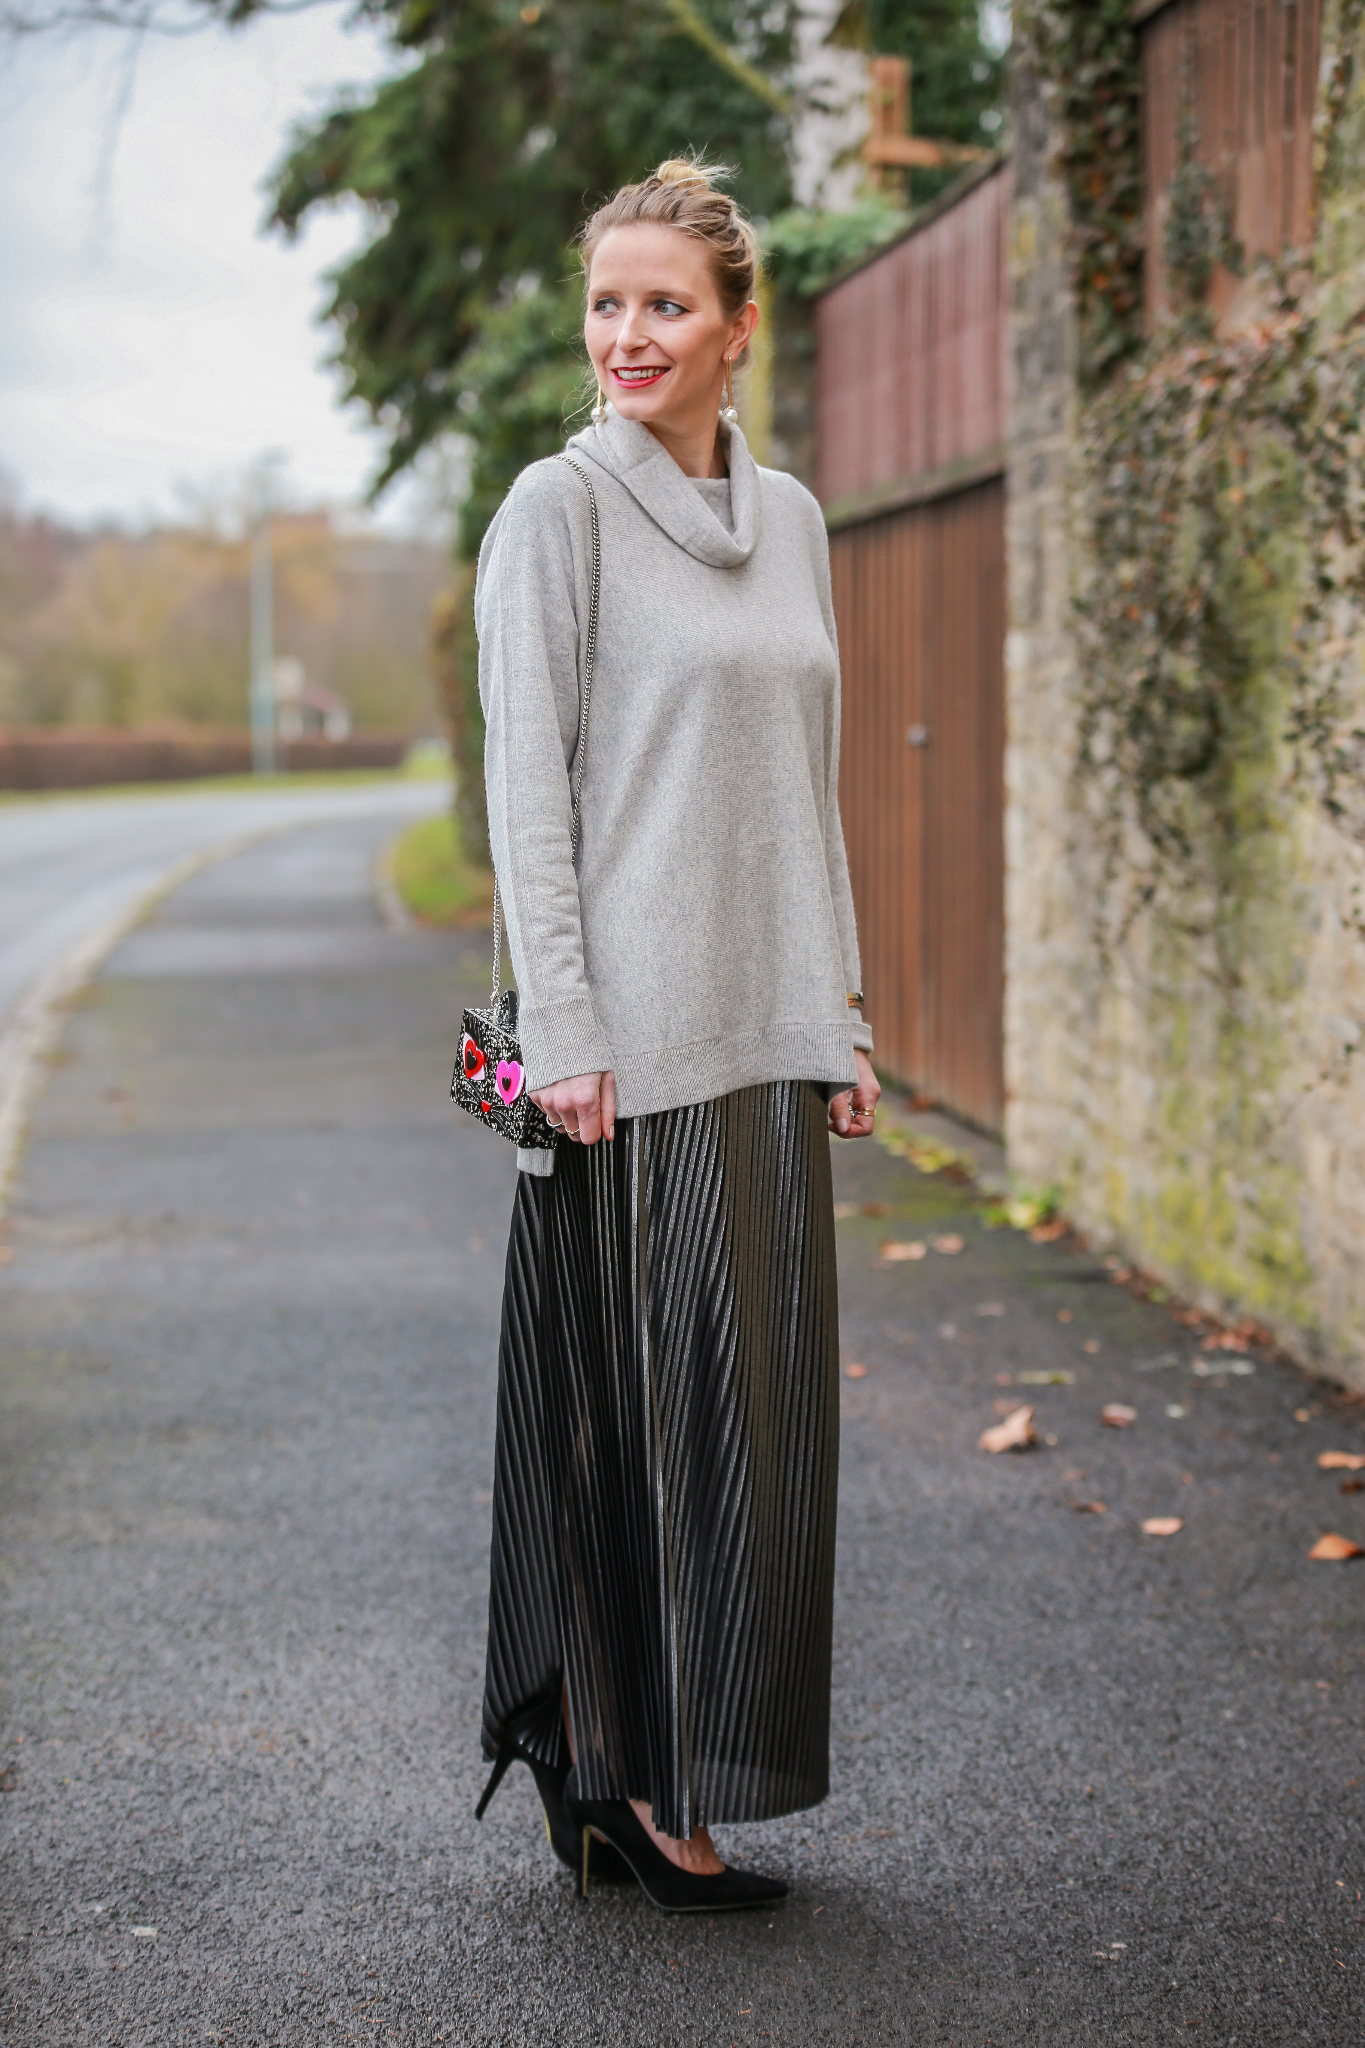 Fashion_Outfit_All_that_glitter-2